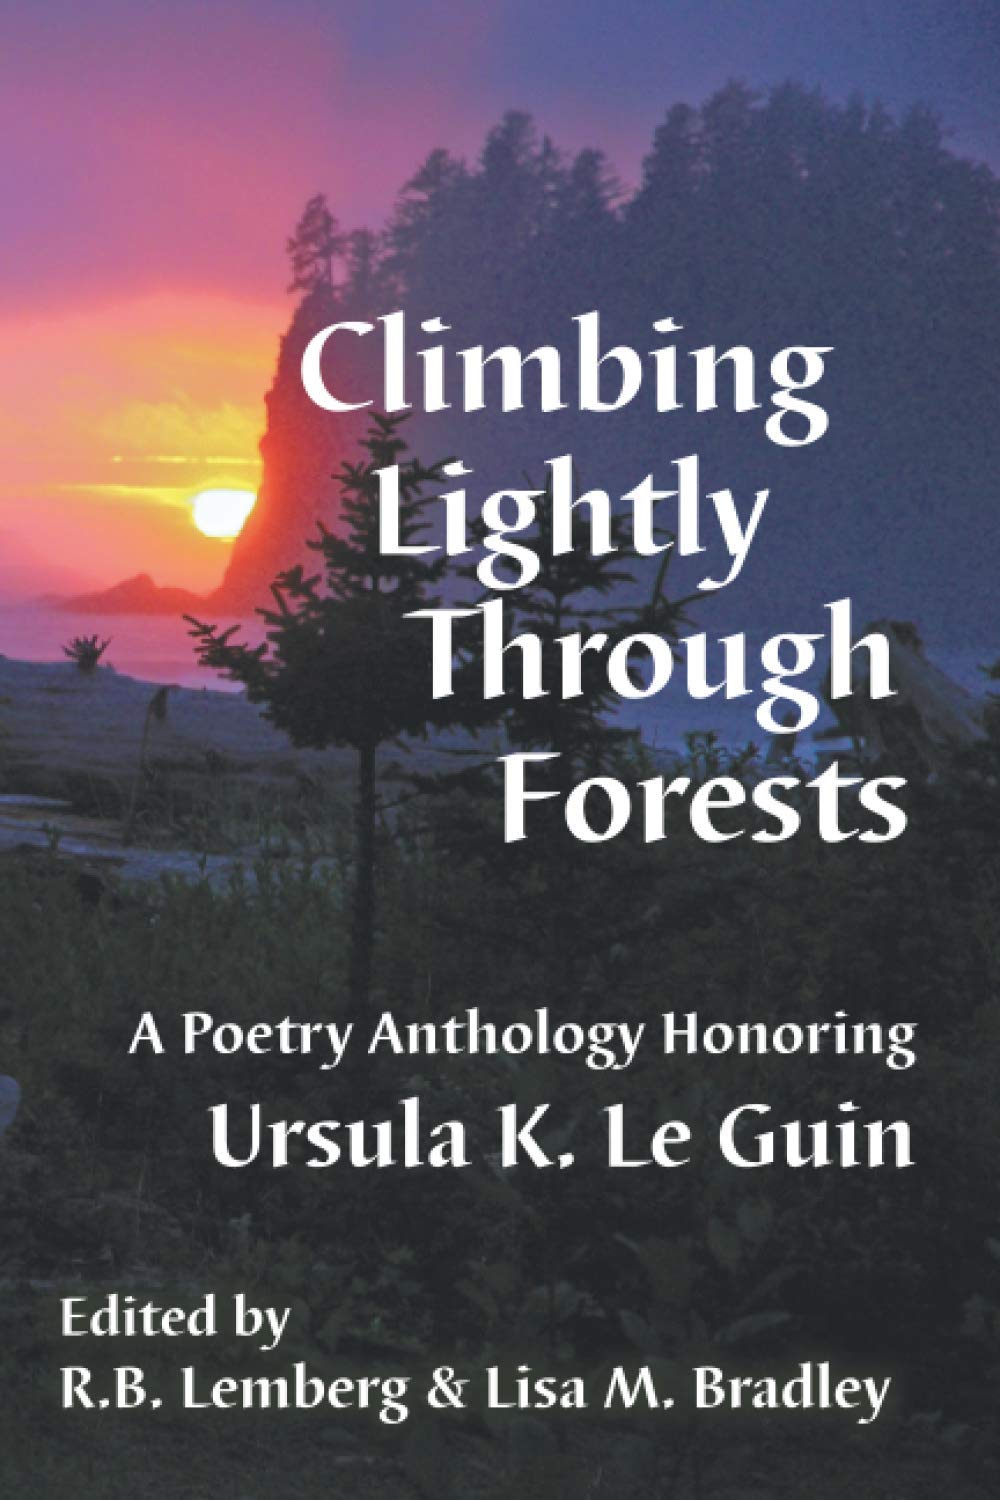 Climbing Lightly Through Forests